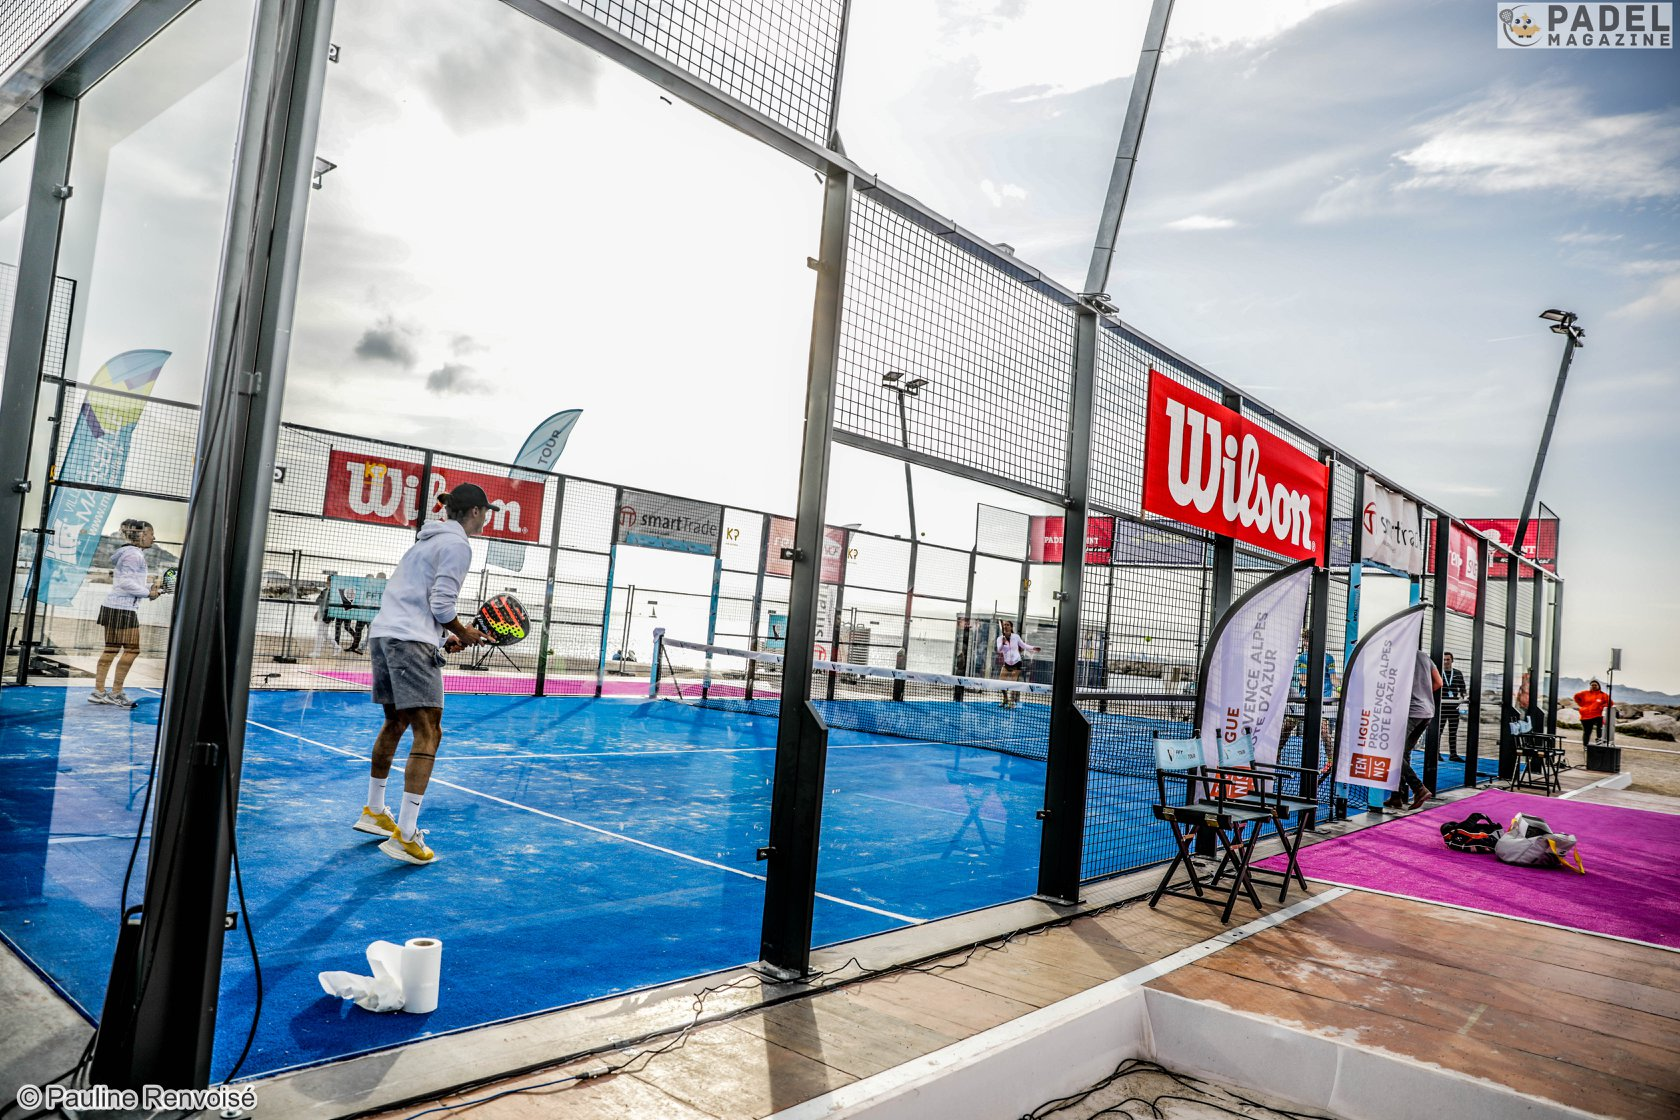 FFT PADEL TOUR 2021 farà male!